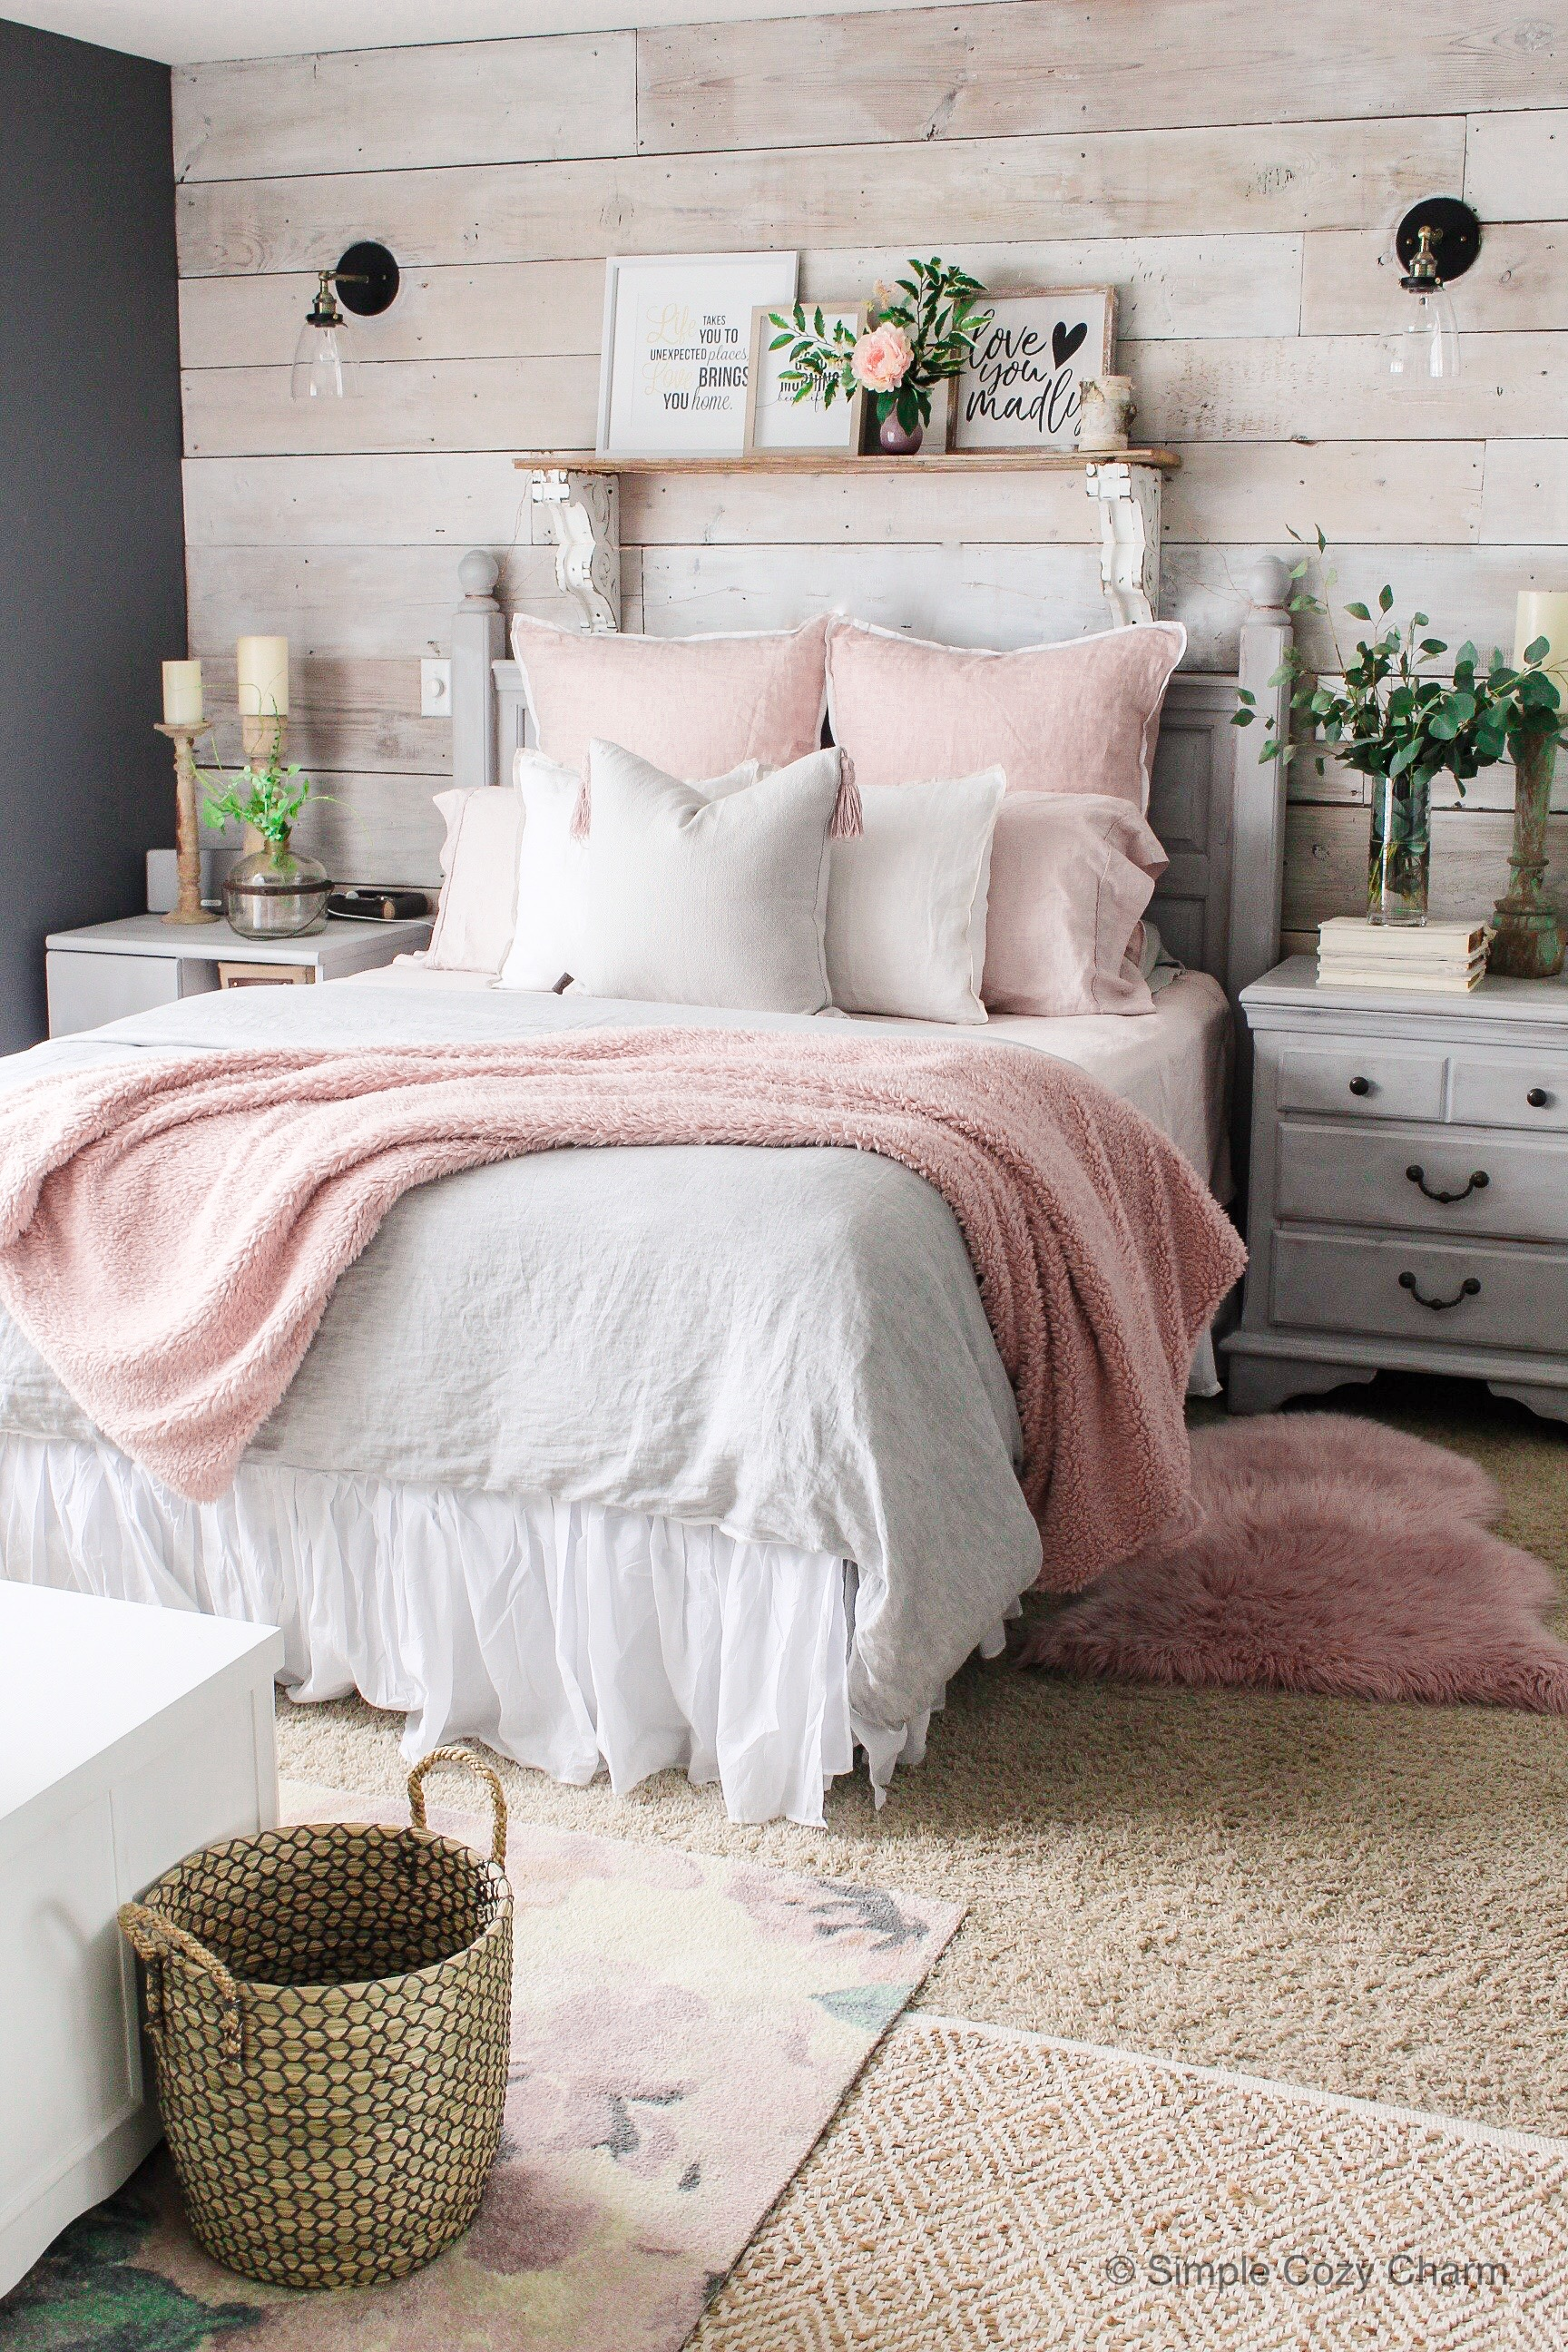 Mid-Winter Bedroom Facelift - Simple Cozy Charm on Basic Room Ideas  id=43296